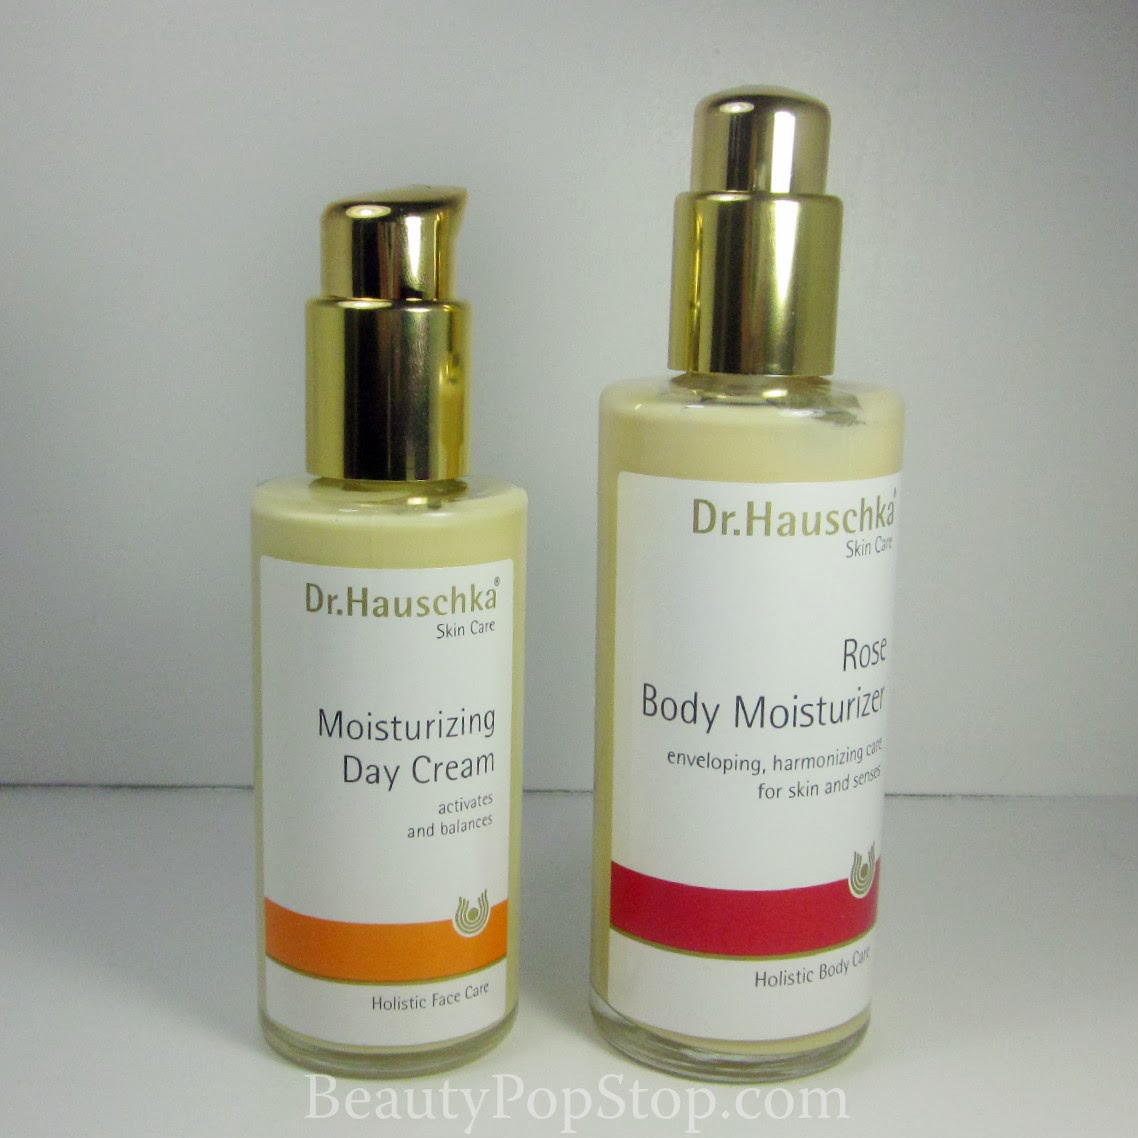 dr. hushcka skin care moisturizing day cream and rose body moisturizer review